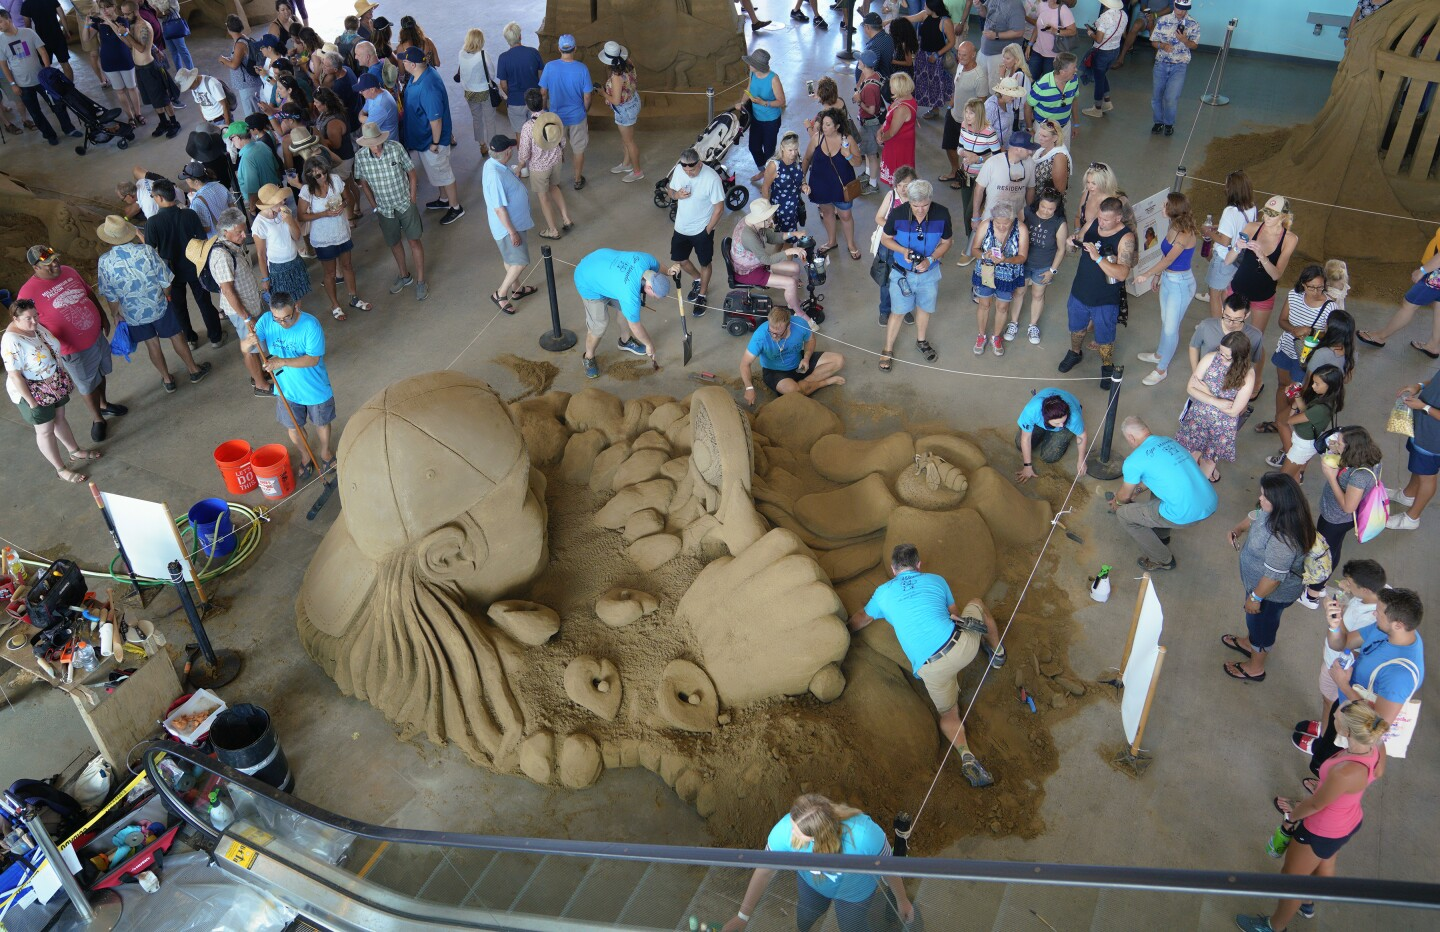 Team Sand Squirrel worked on their sand sculpture in the I.B. Challenge Class during the U.S. Sand Sculpting Challenge held in downtown San Diego on Sunday, September 1, 2019.